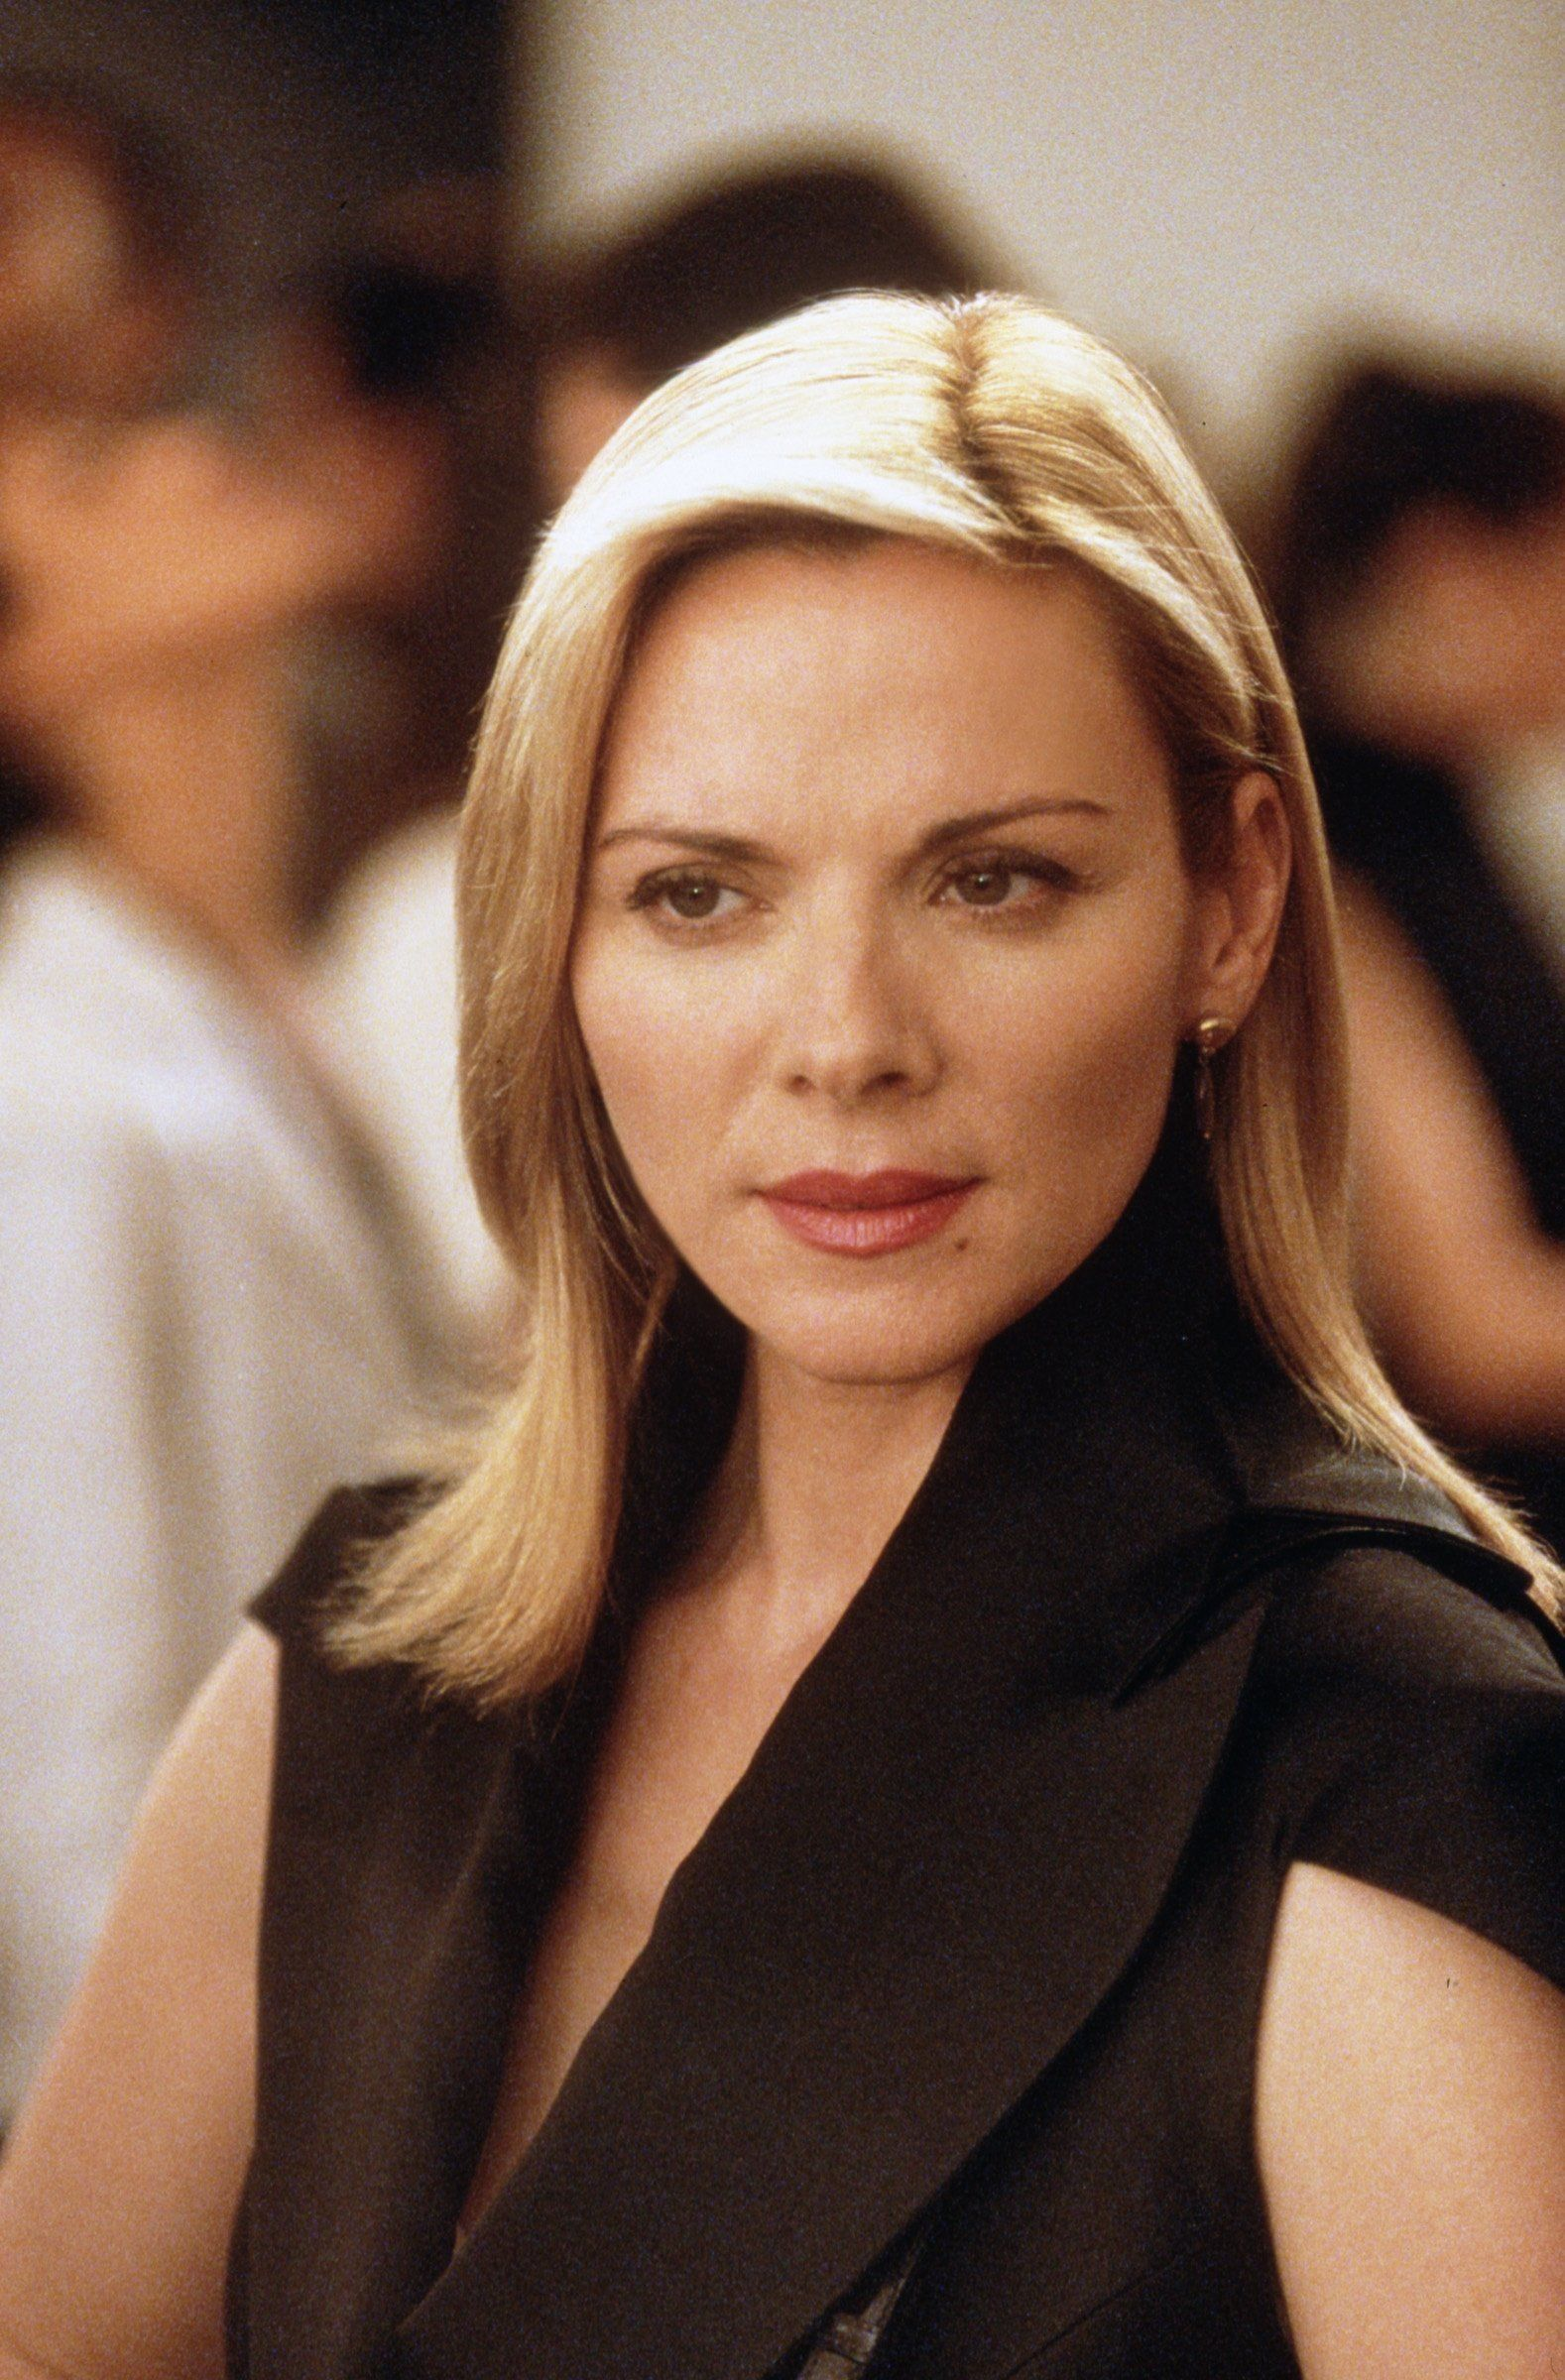 382260 07: Kim Cattrall Stars In The Comedy Series 'Sex And The City' Now In Its Third Season.  (Photo By Getty Images)